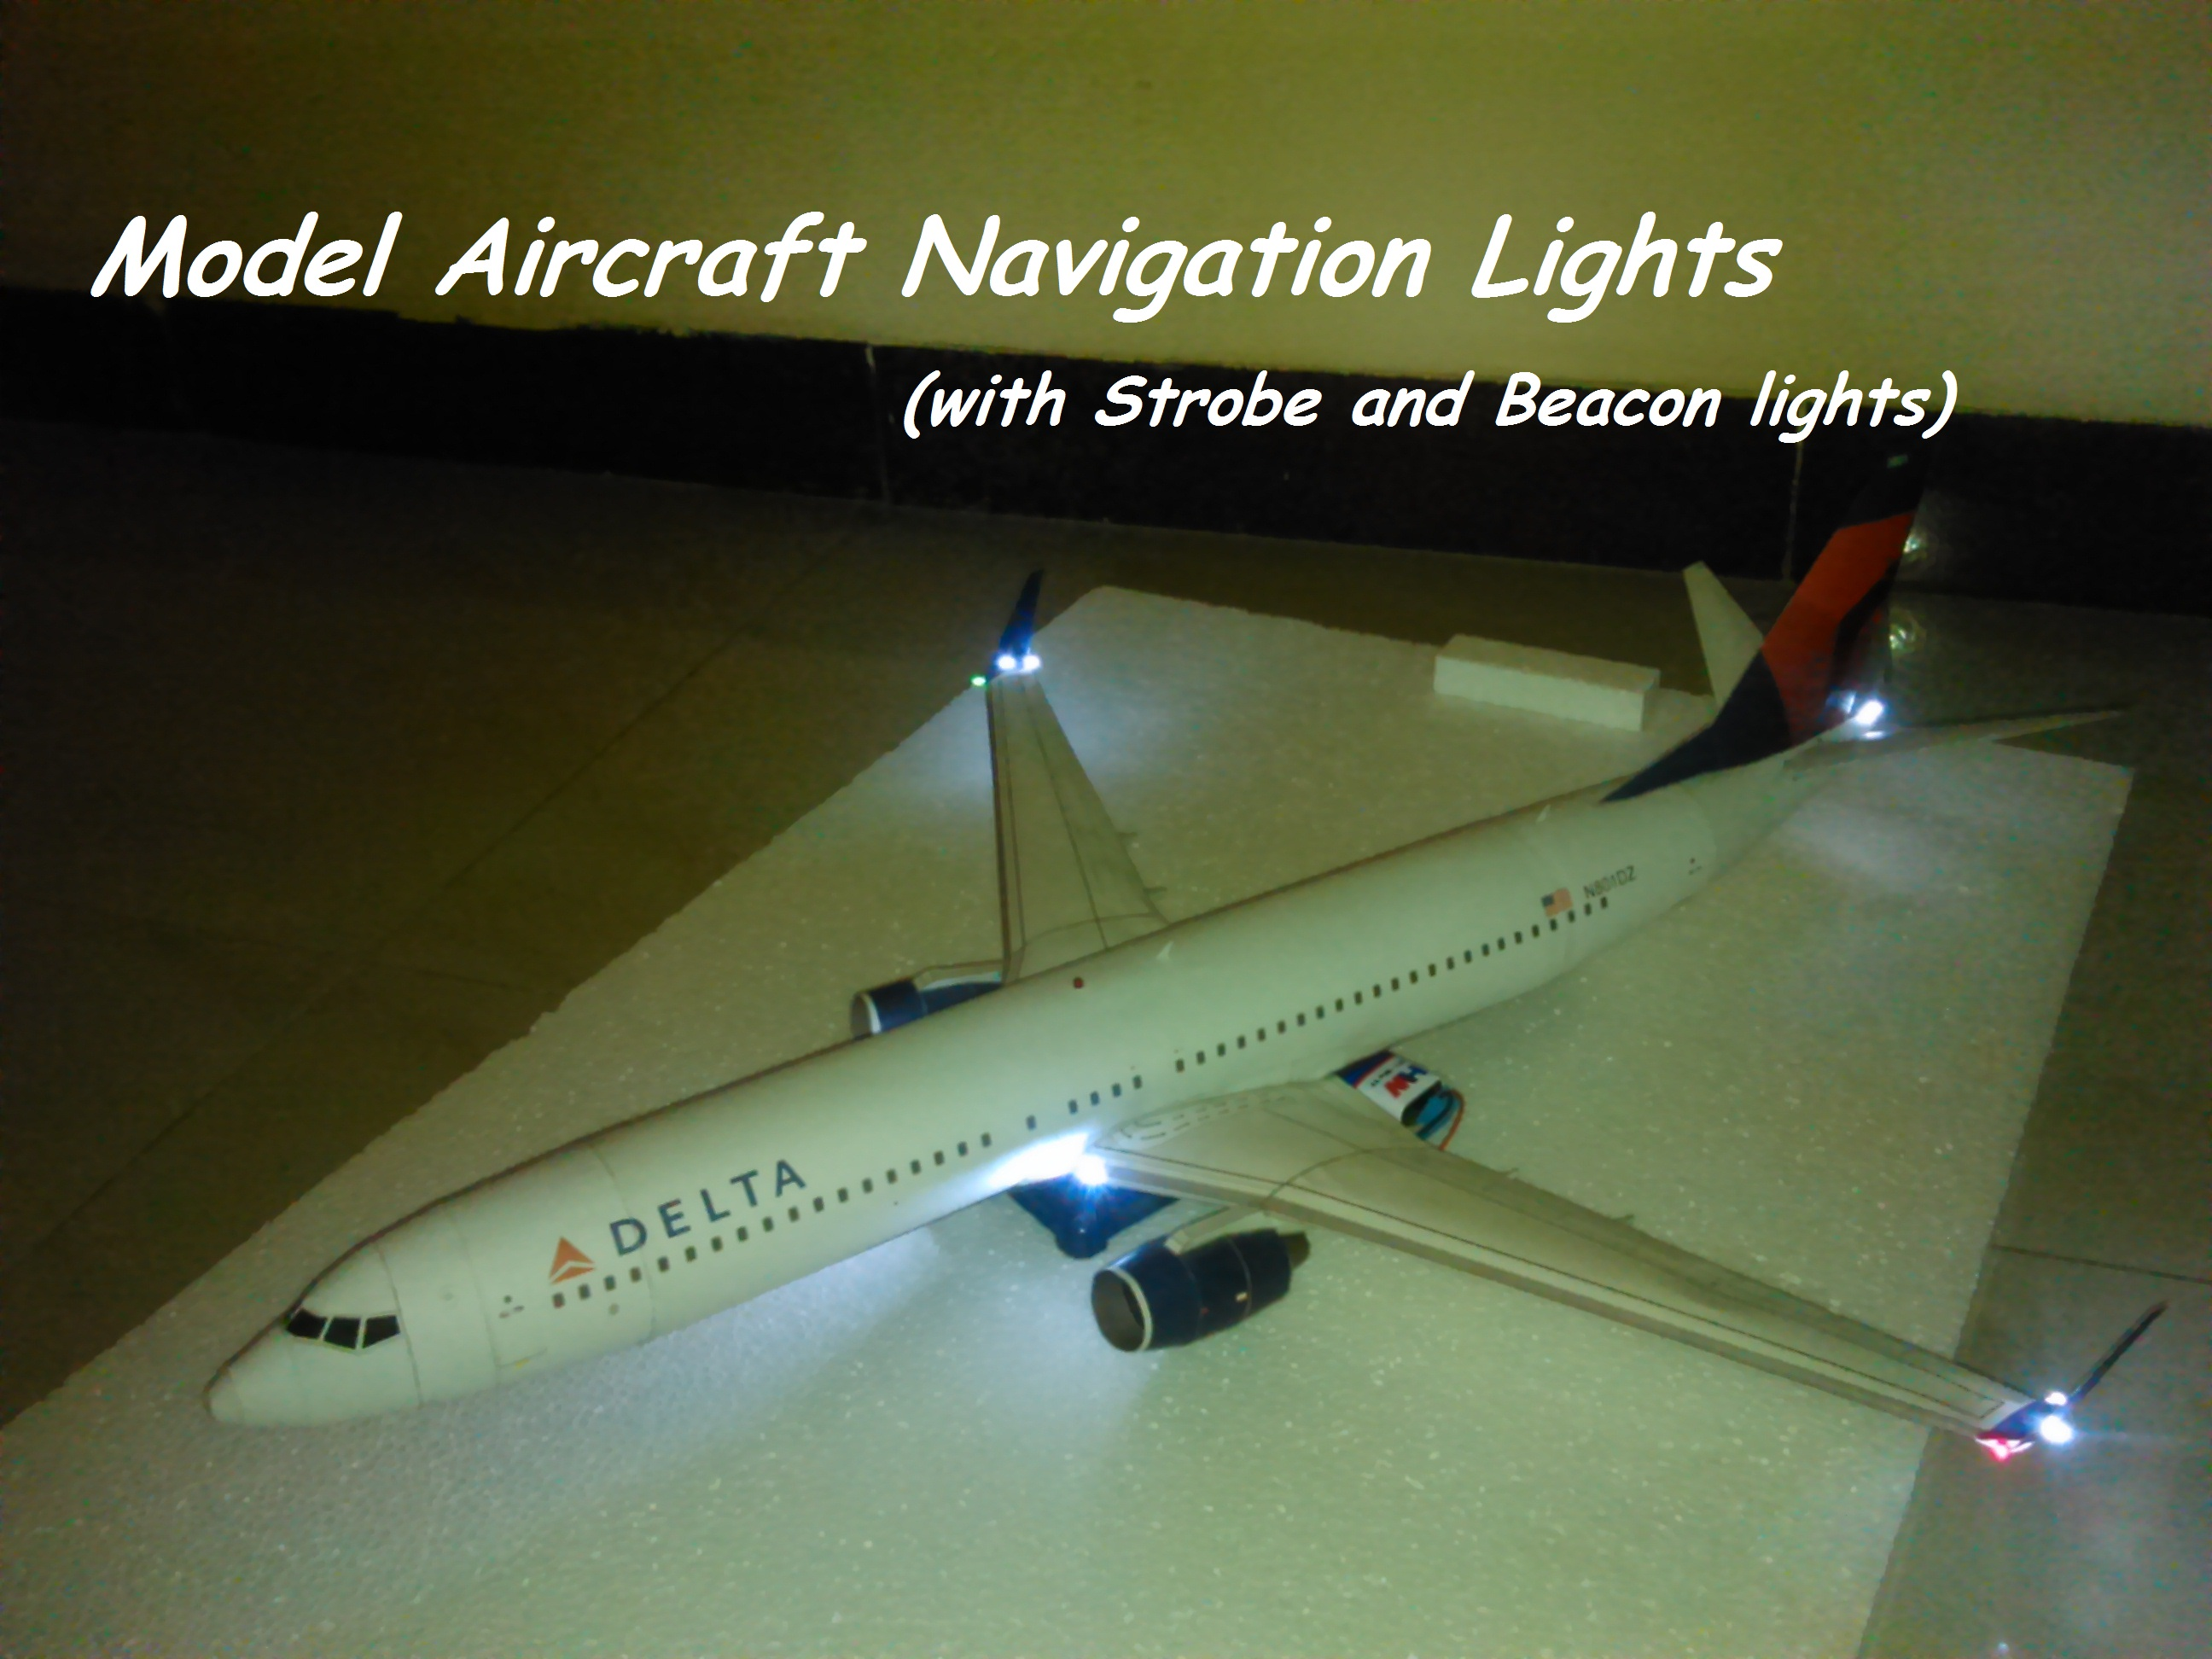 Picture of $1 Model Aircraft Navigation Lights